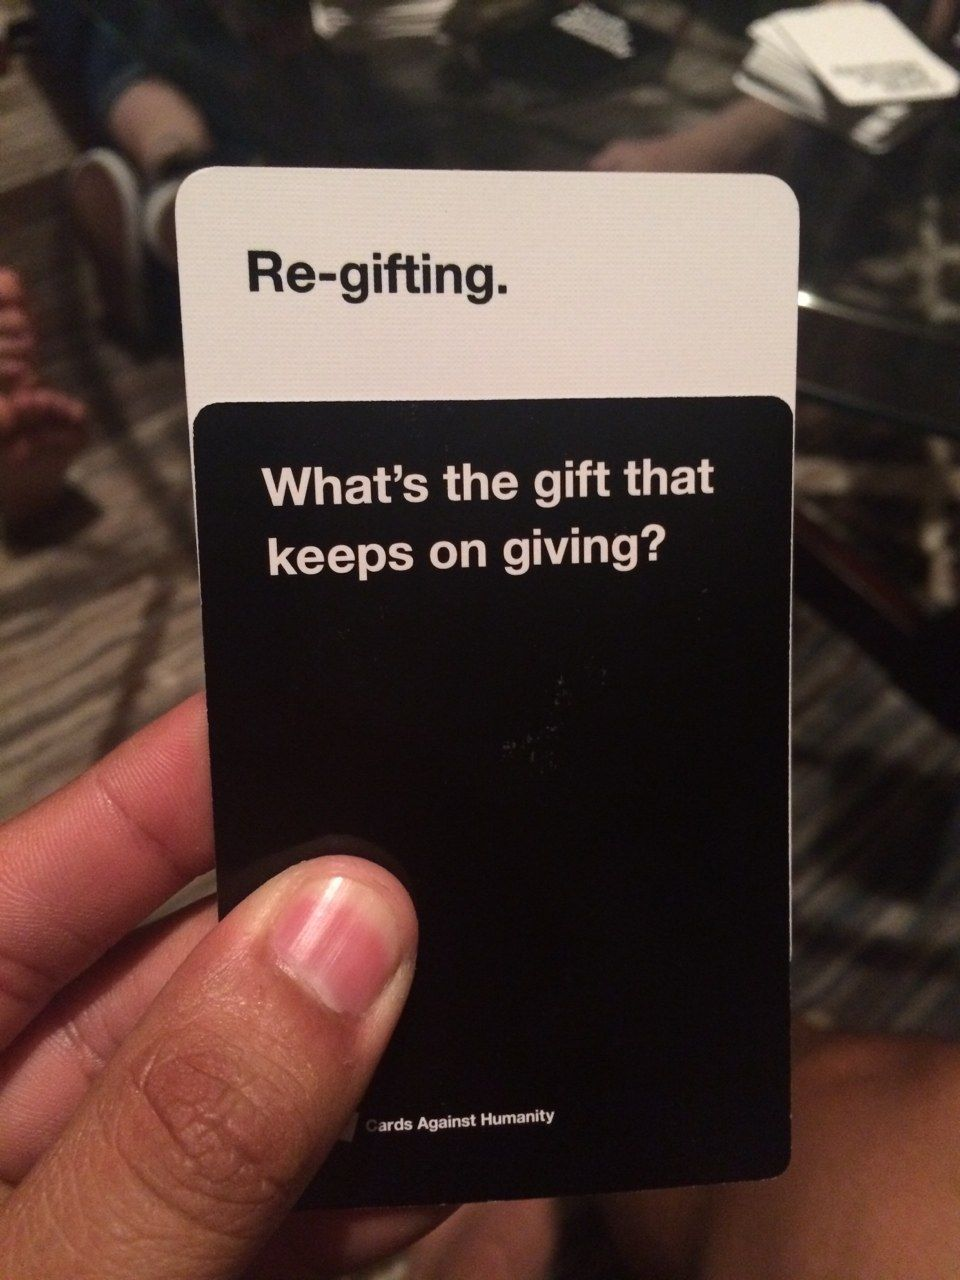 The worst cards against humanity cards to play around family